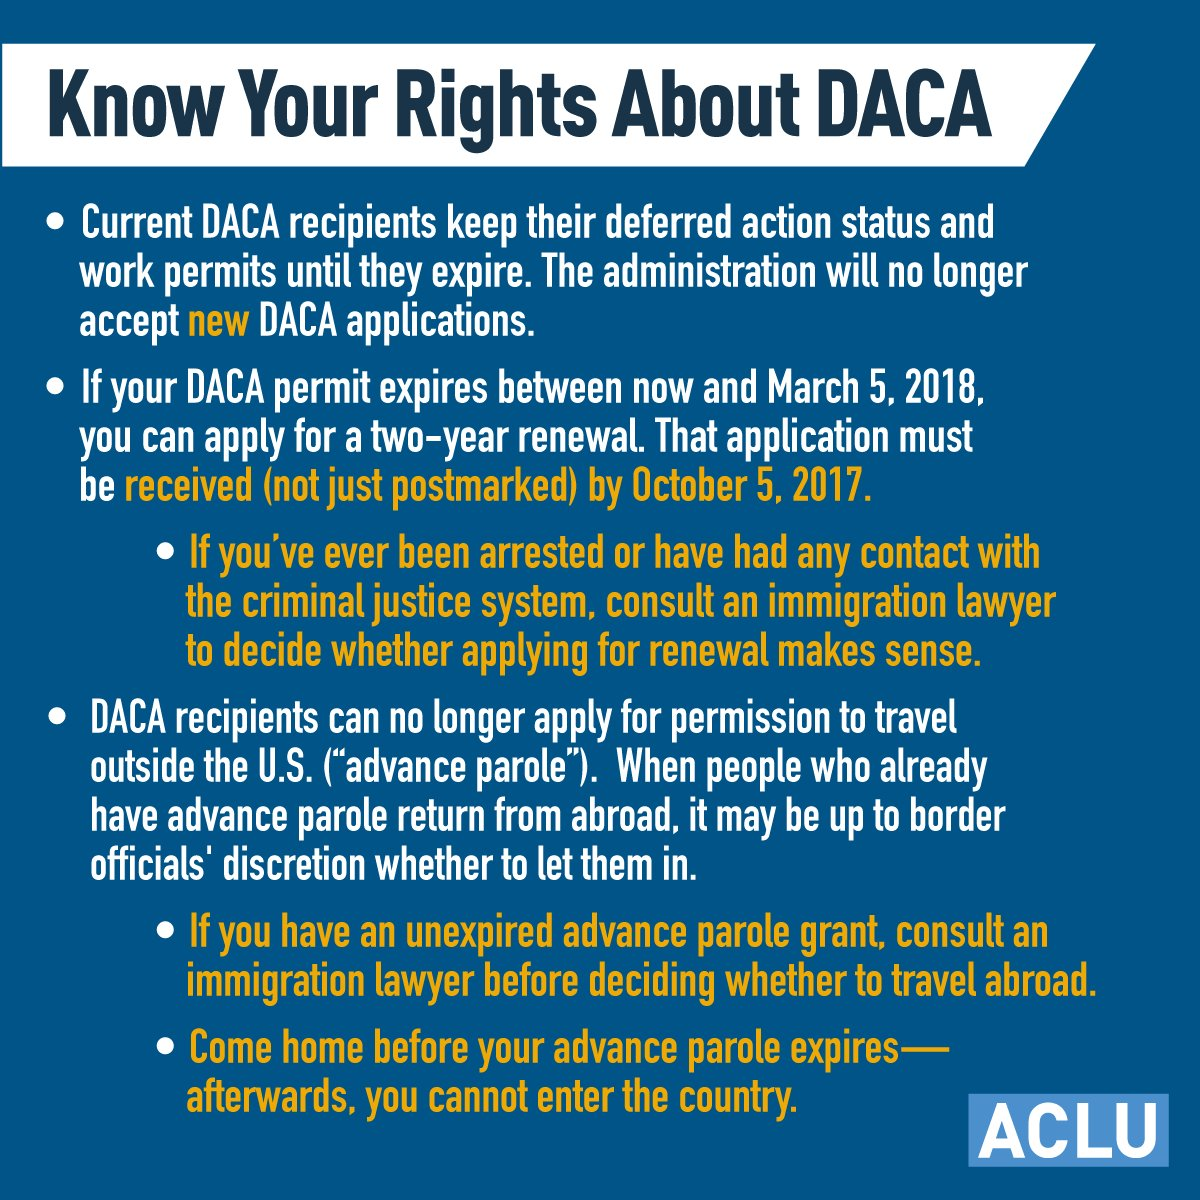 DACA recipients, you have rights.  If you have questions, talk with a lawyer before submitting a renewal. #HereToStay